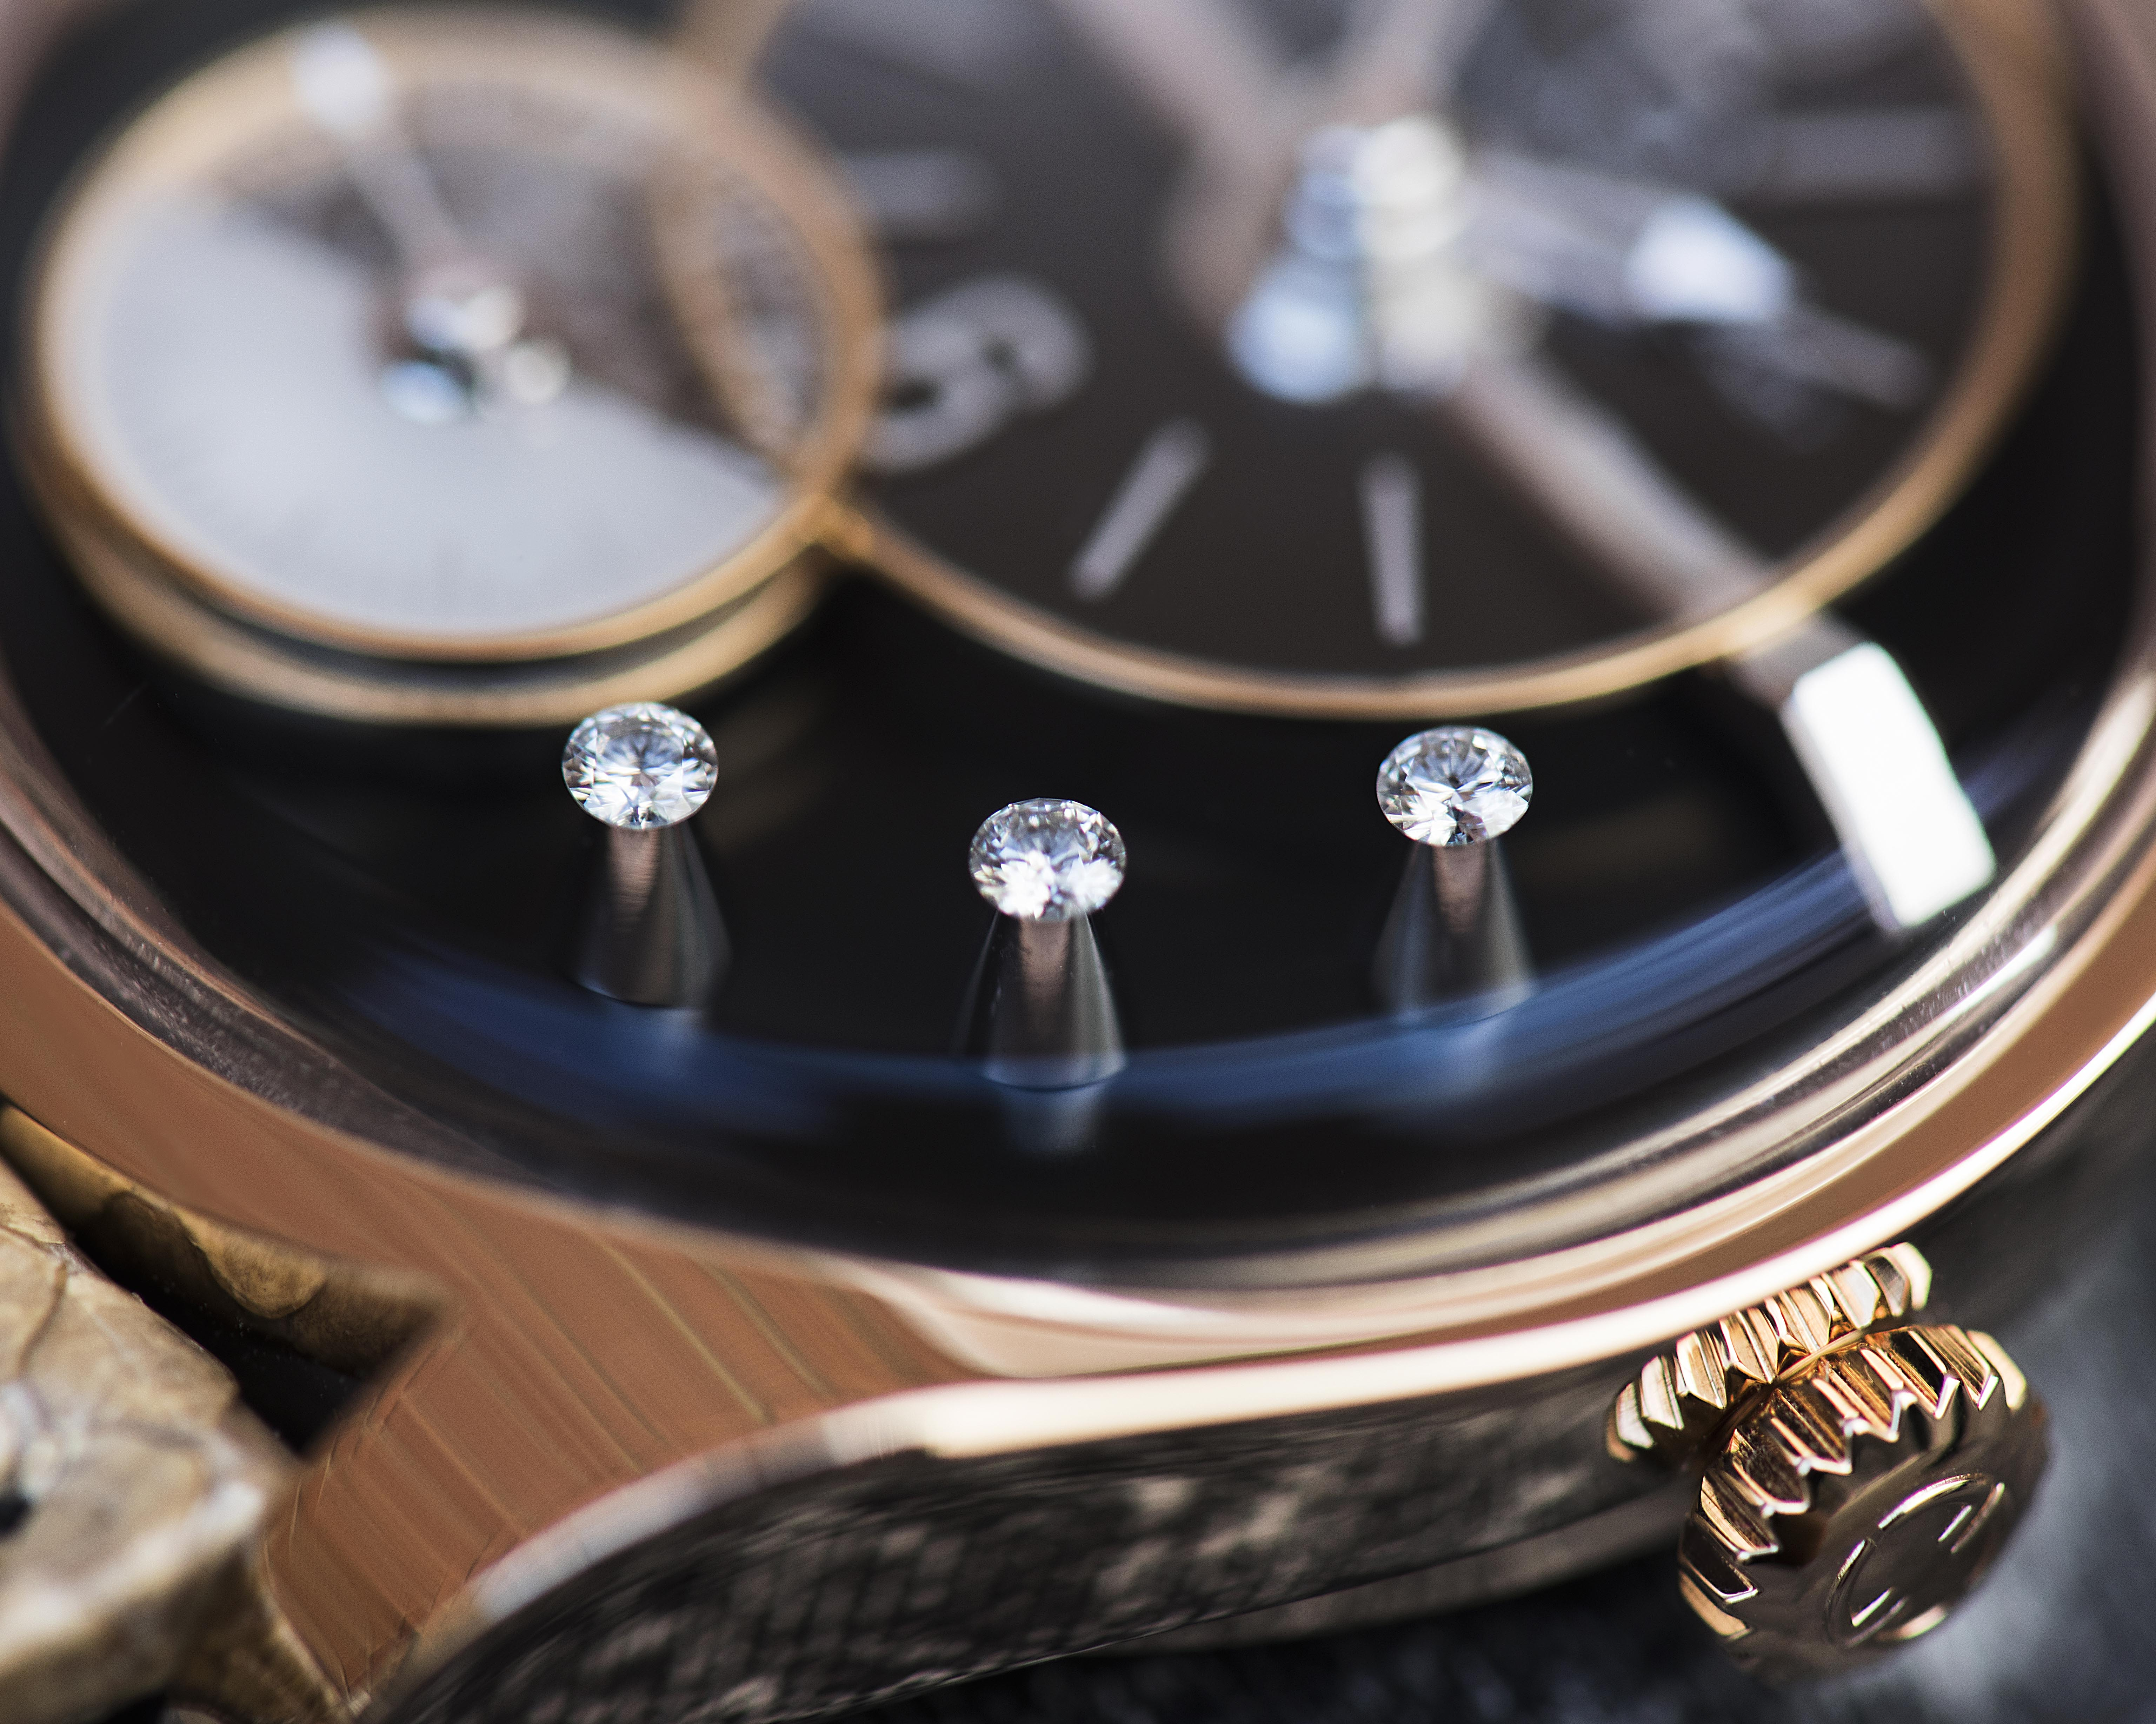 The unique diamond setting on the Emmanuel Bouchet EB02 watch makes it worth the extra thousands of dollars over the unset version.